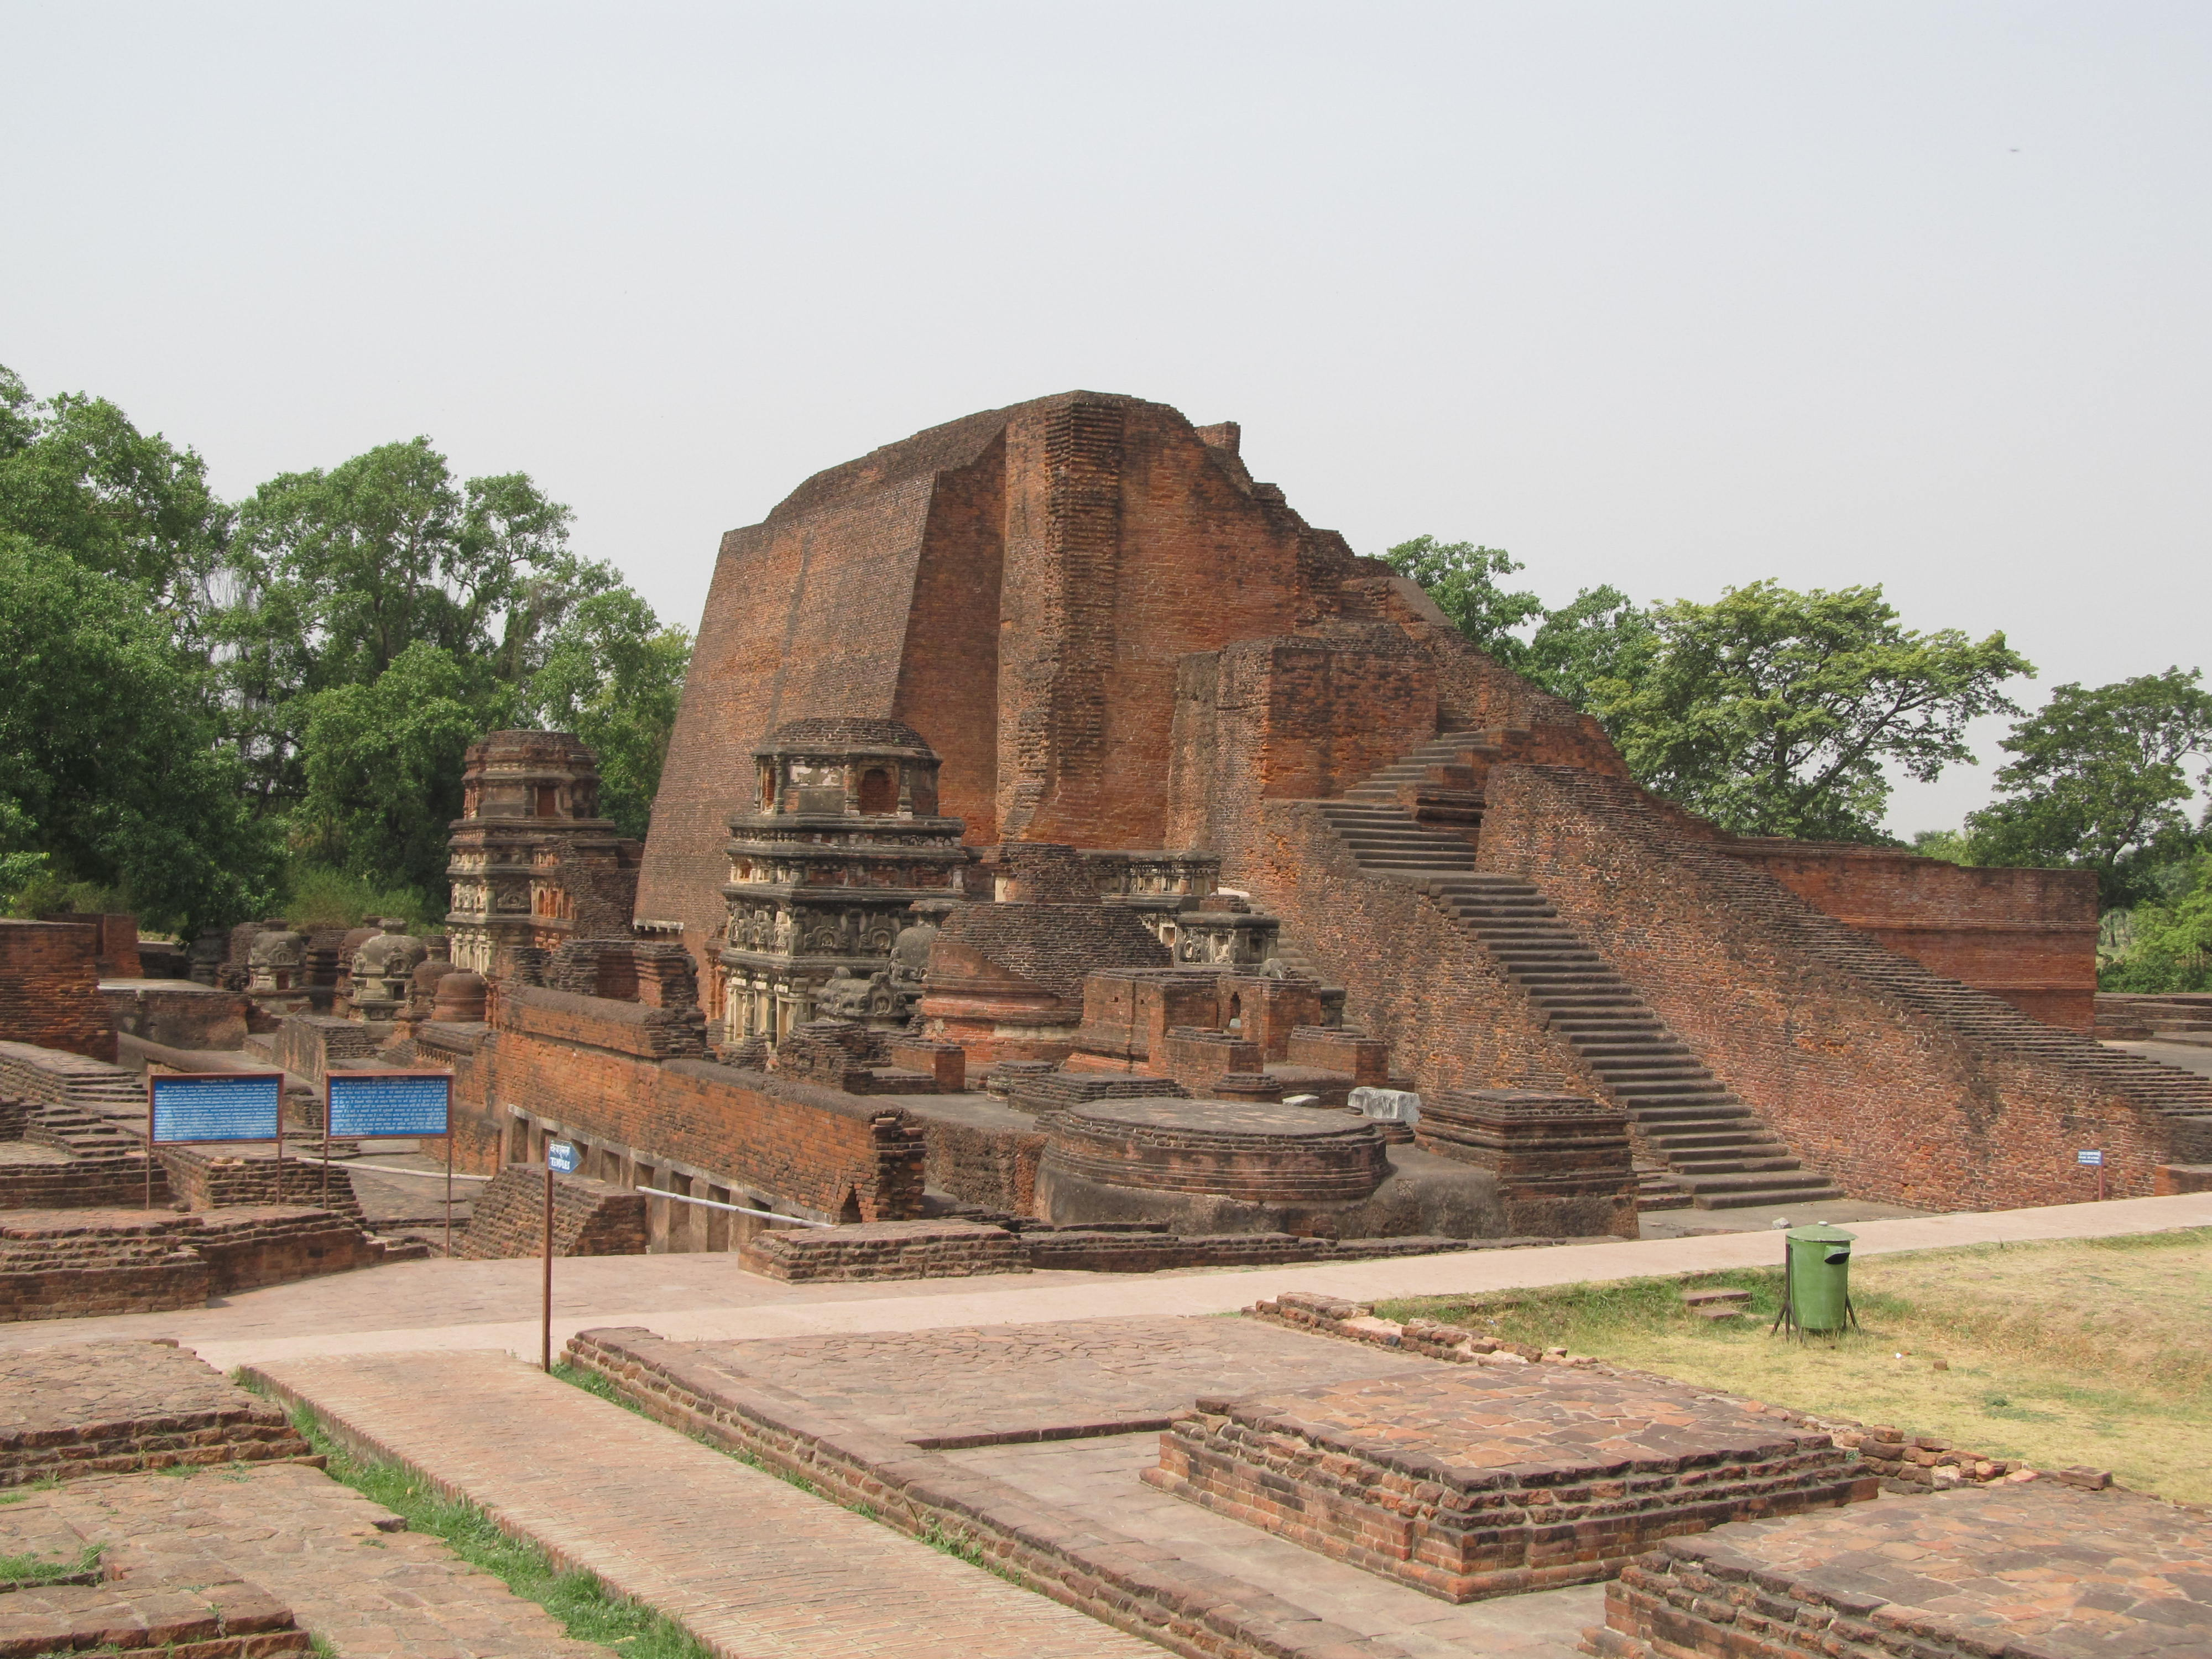 mason city buddhist dating site It's 30-45 minutes from the city  including jainism, buddhism,  its modernity contrasts with some fascinating medieval ruins dating back to the .